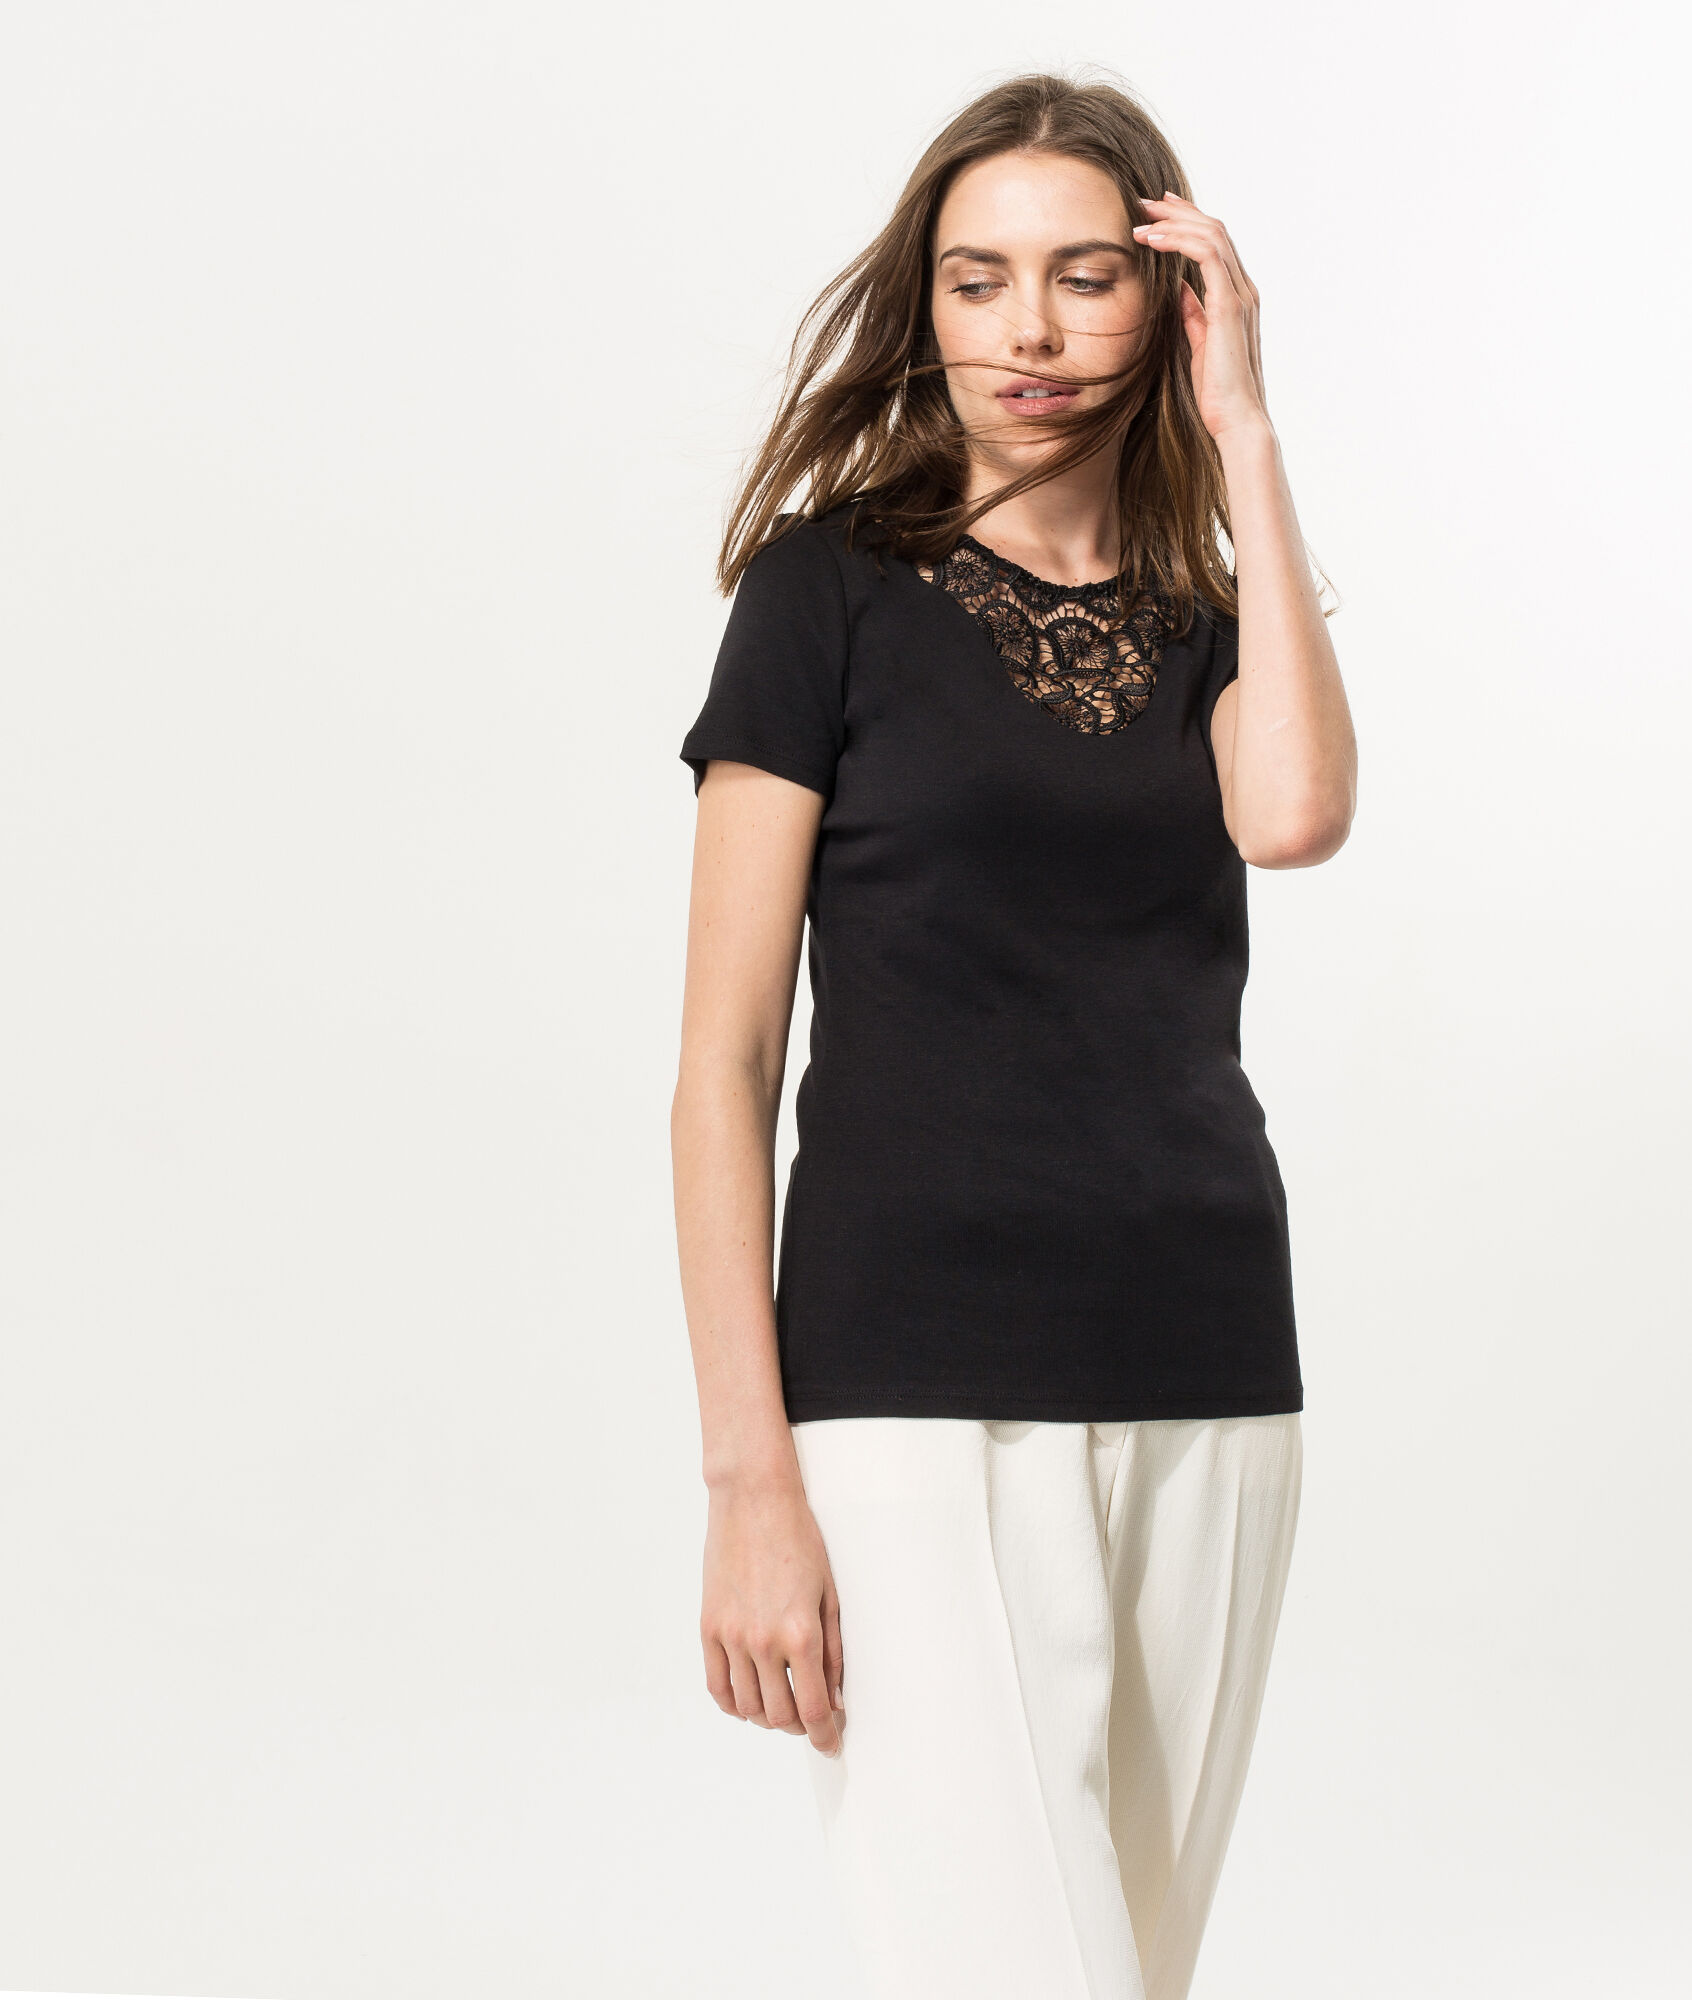 Black t shirt with lace - Nantasia Black T Shirt With Lace Neckline